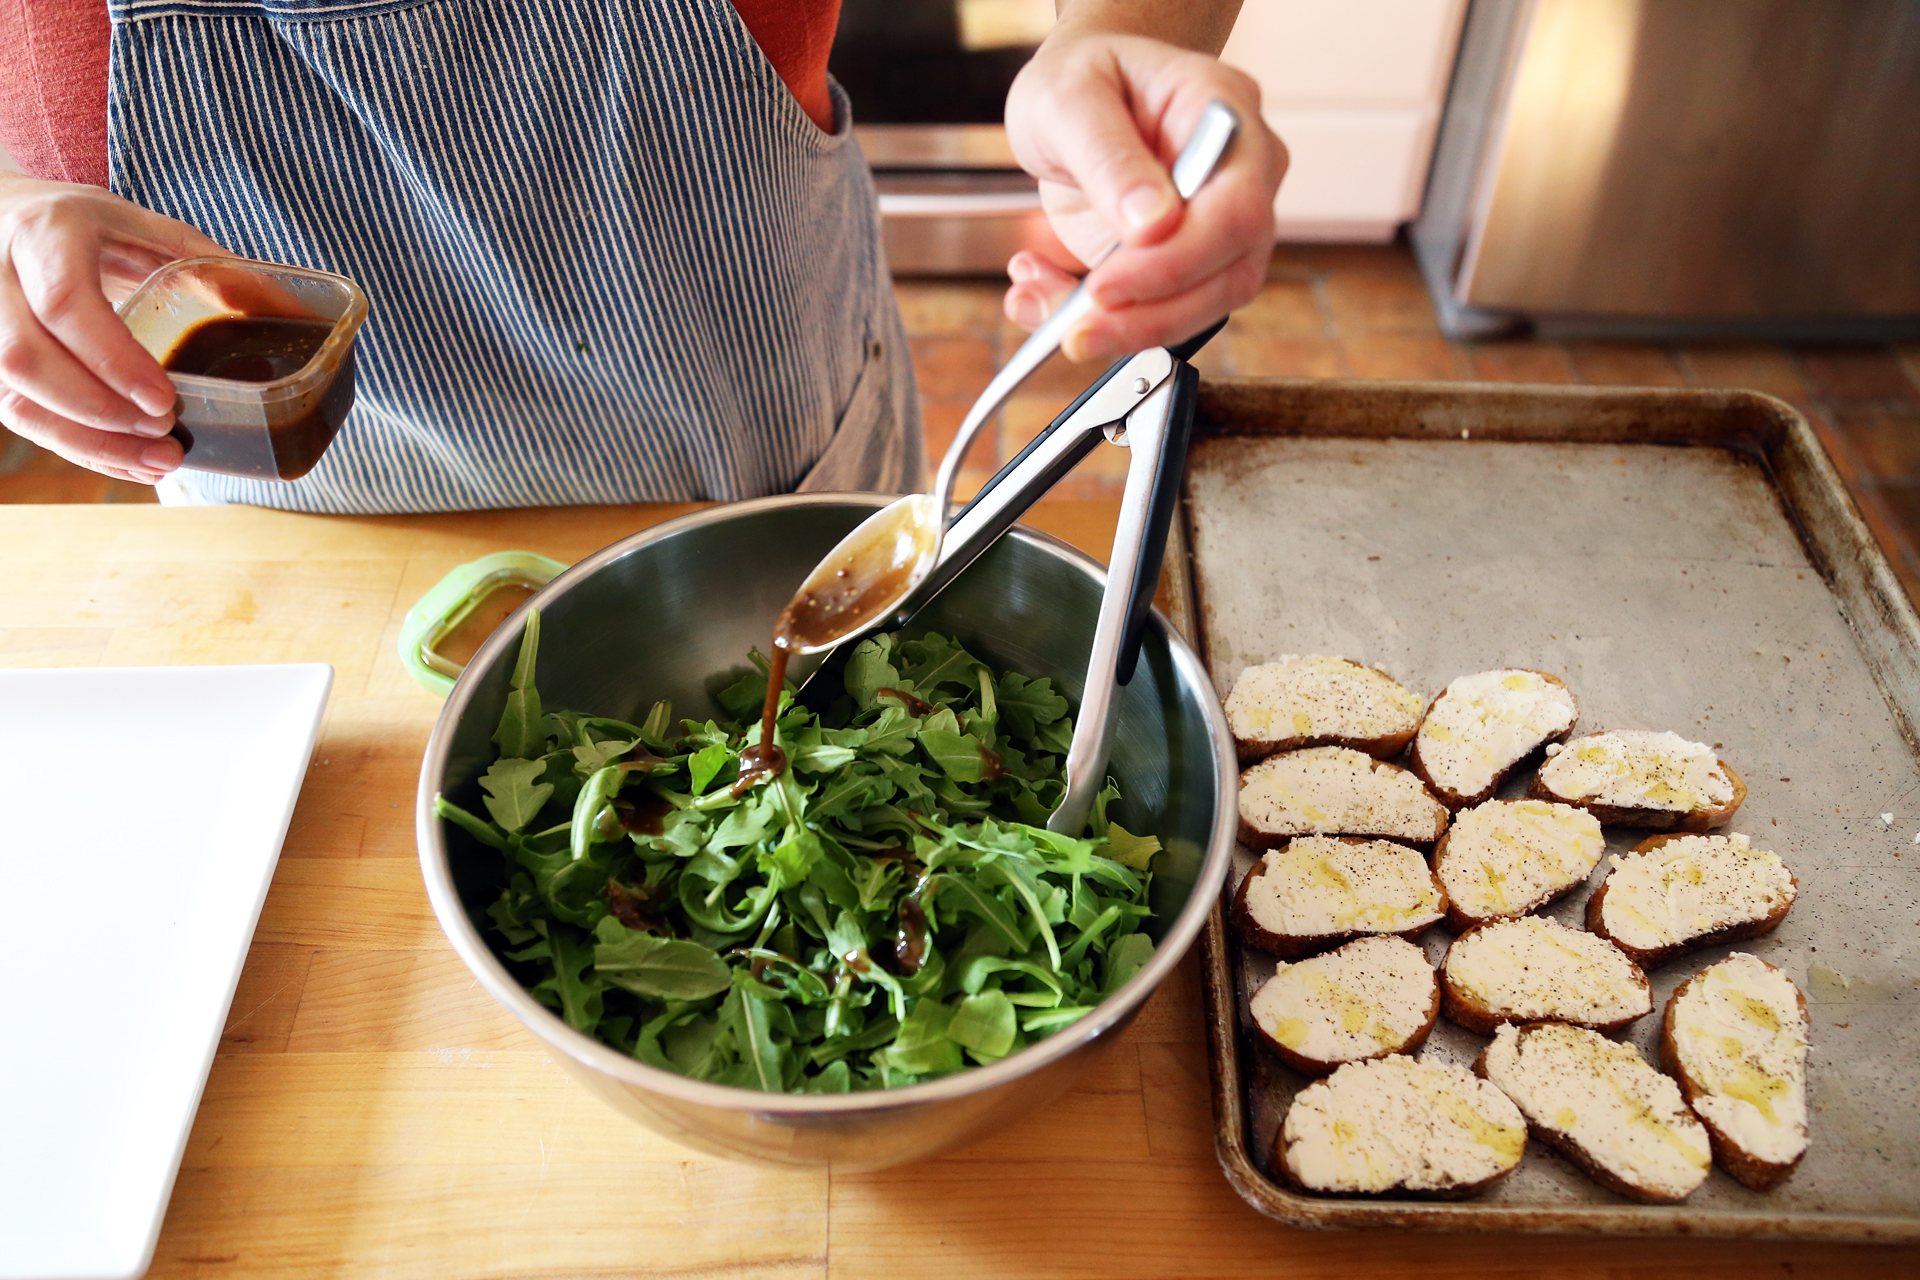 In a mixing bowl, toss the arugula with about 2 tbsp of the vinaigrette.